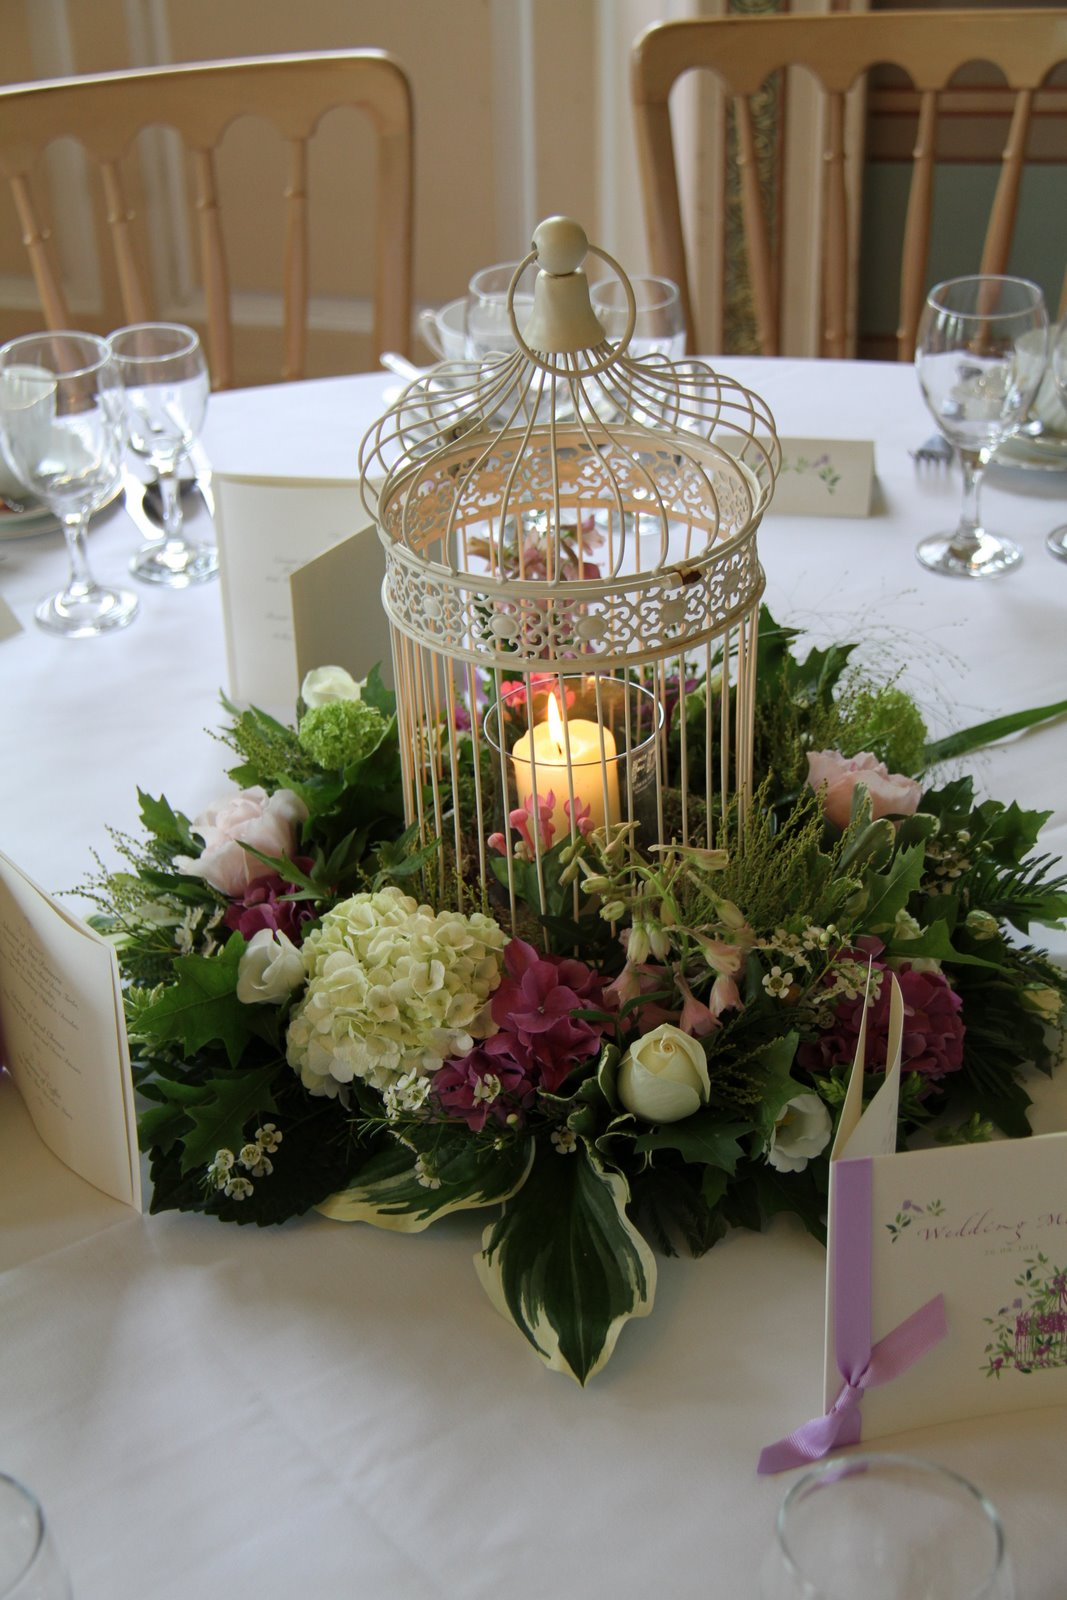 Flower Design Table Centrepieces: Vintage Bird Cage Table Centrepiece